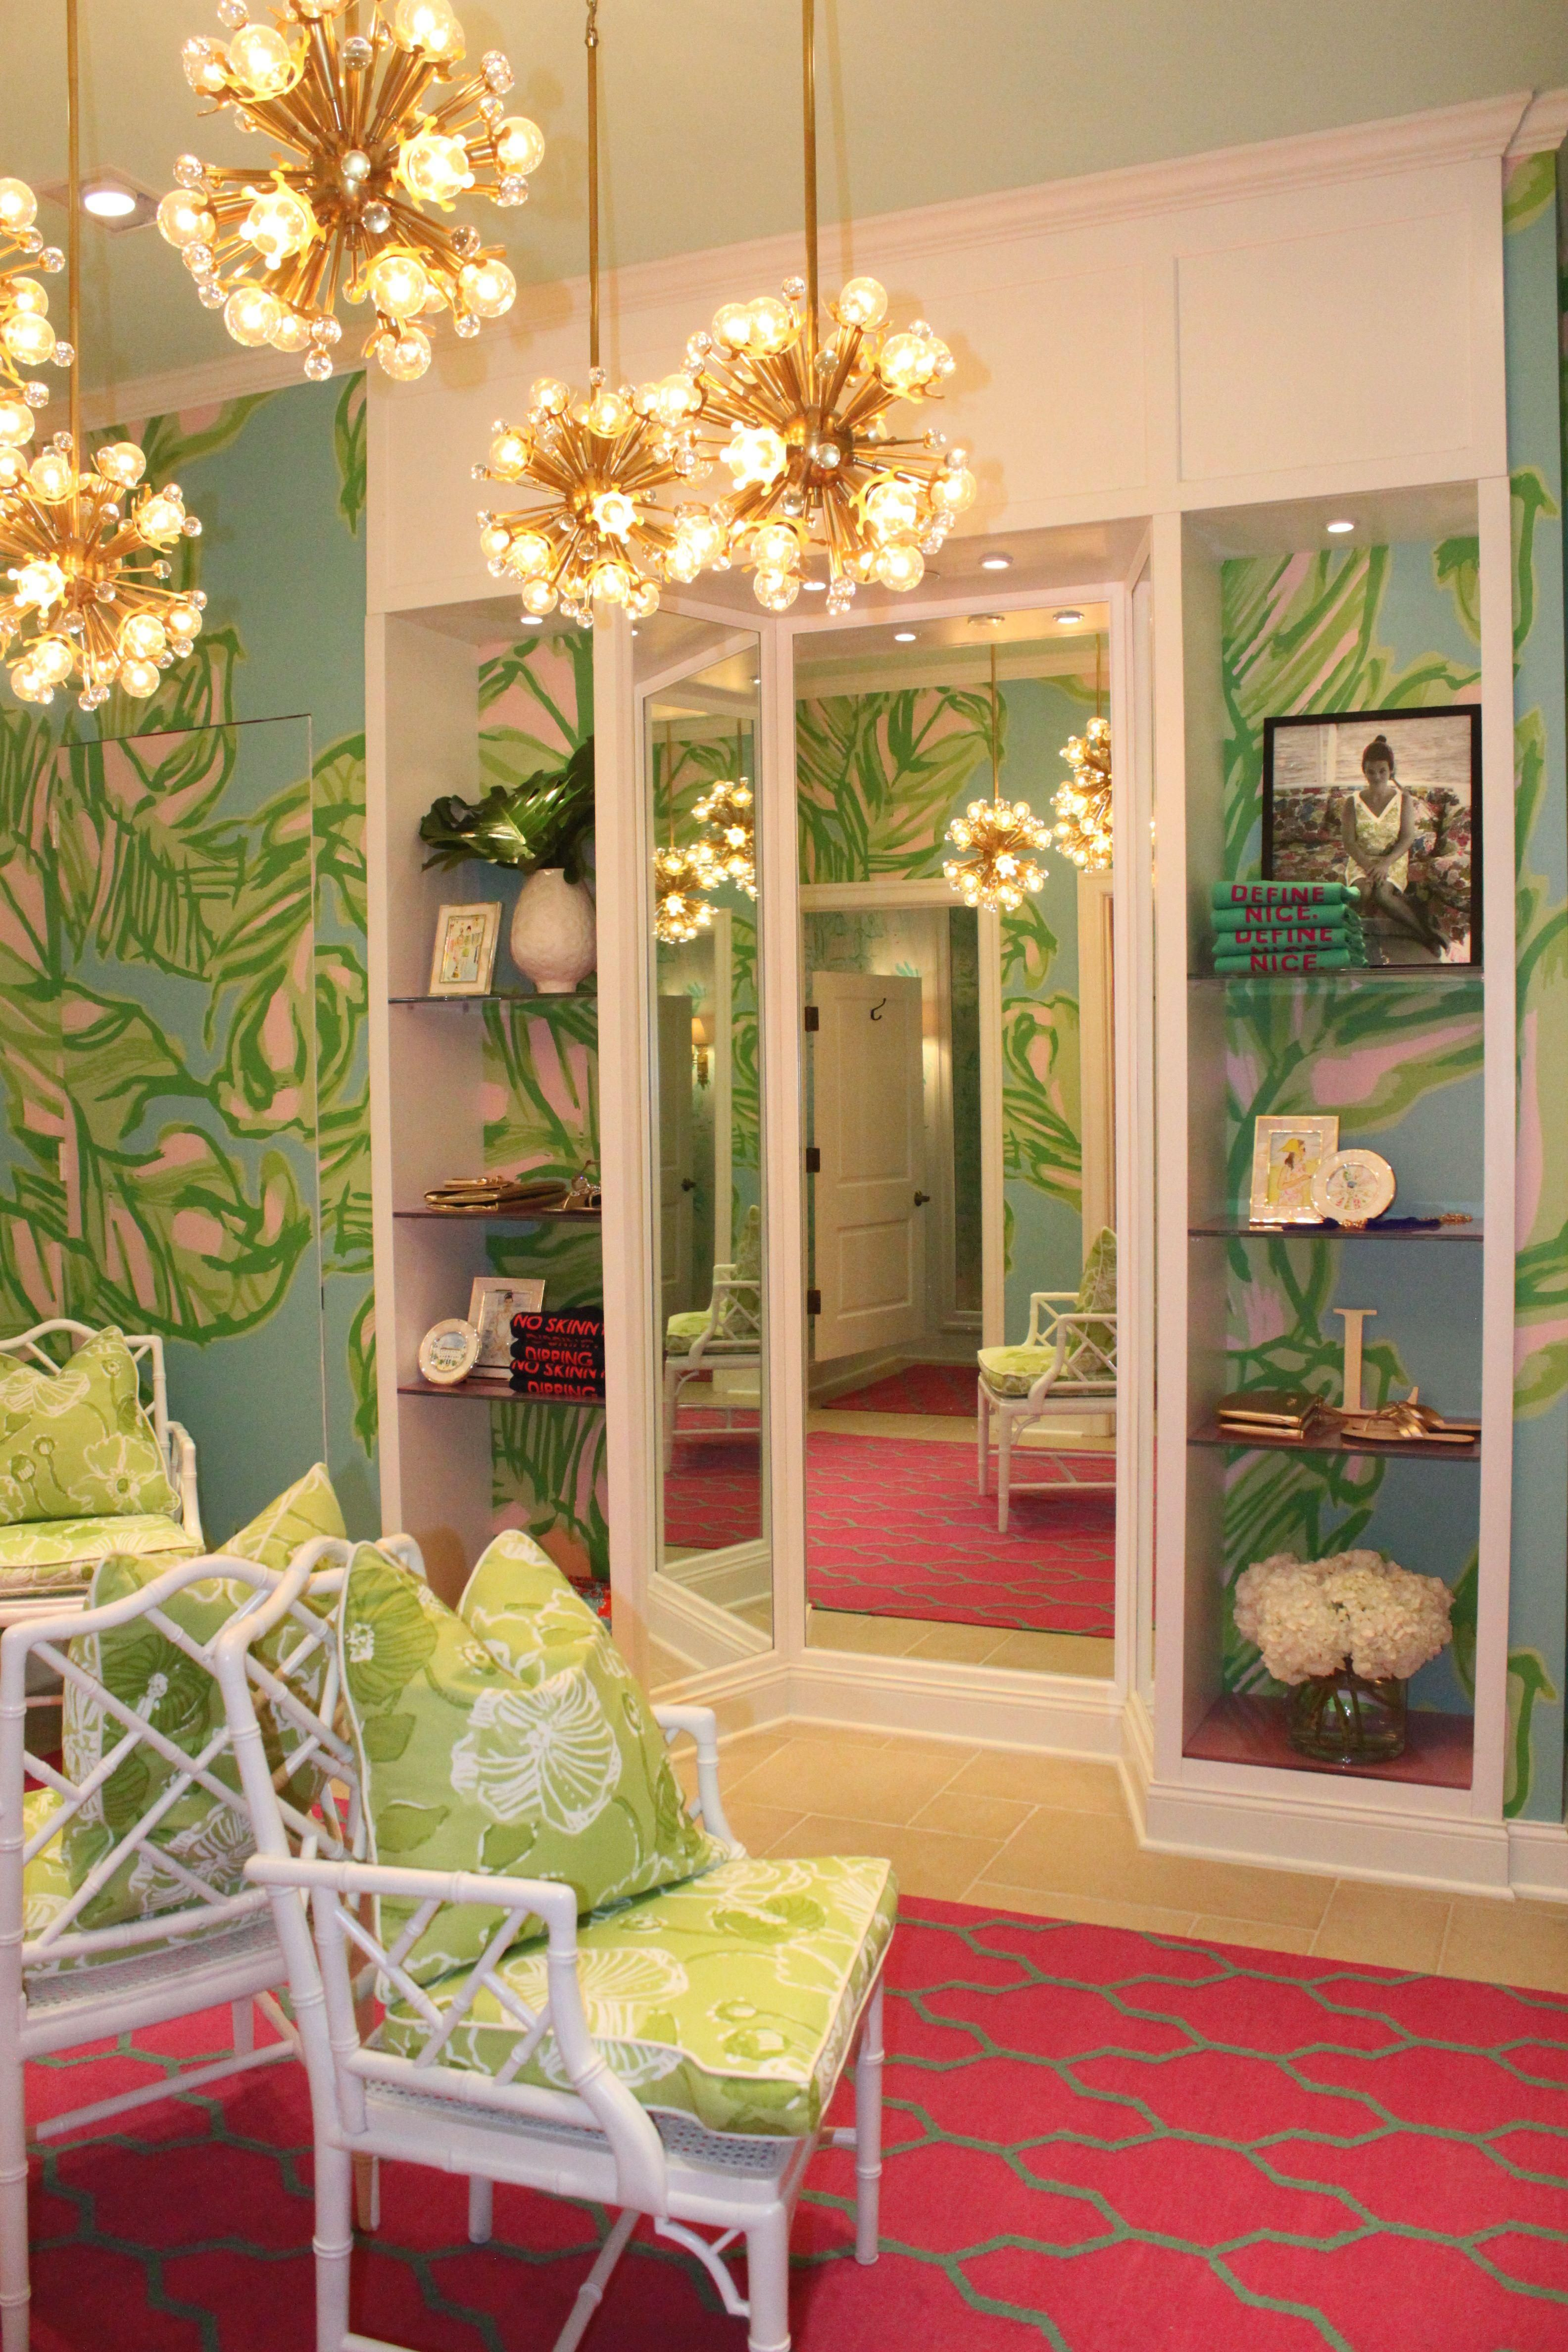 Dressing Room Area At Lilly Pulitzer Waterside In Naples